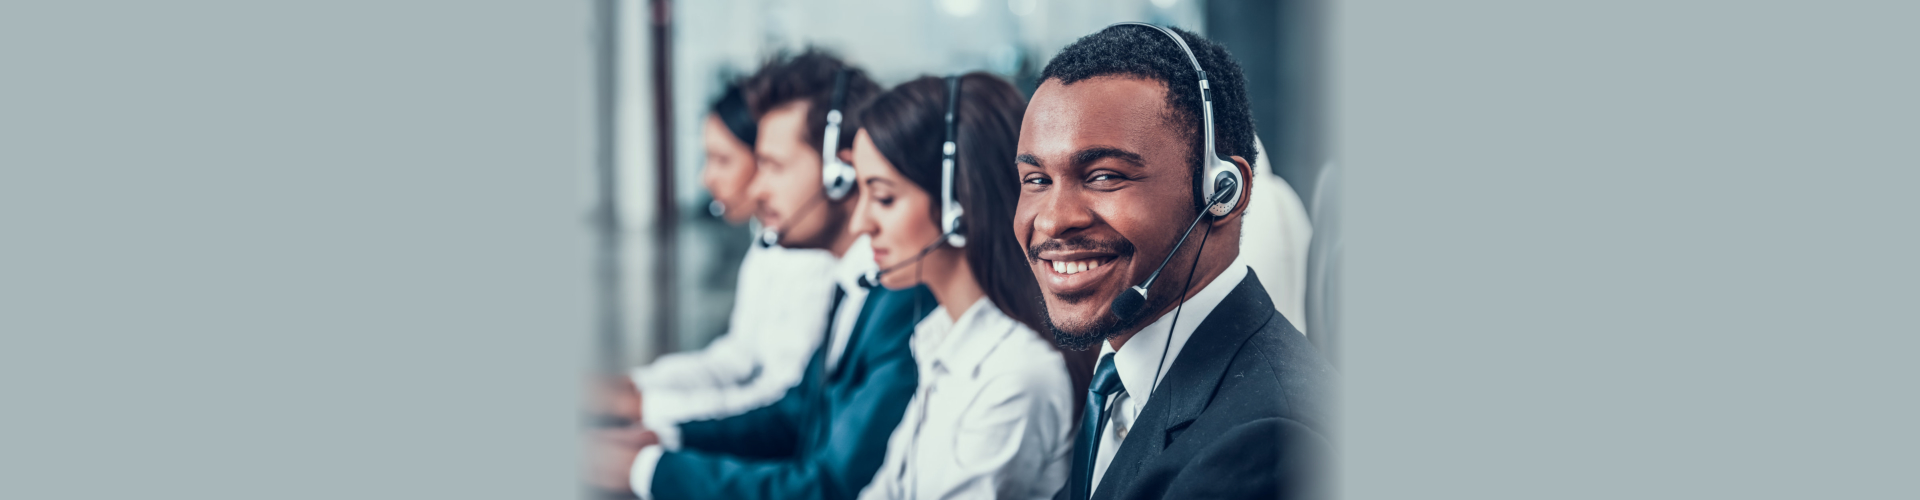 Employees wearing headset